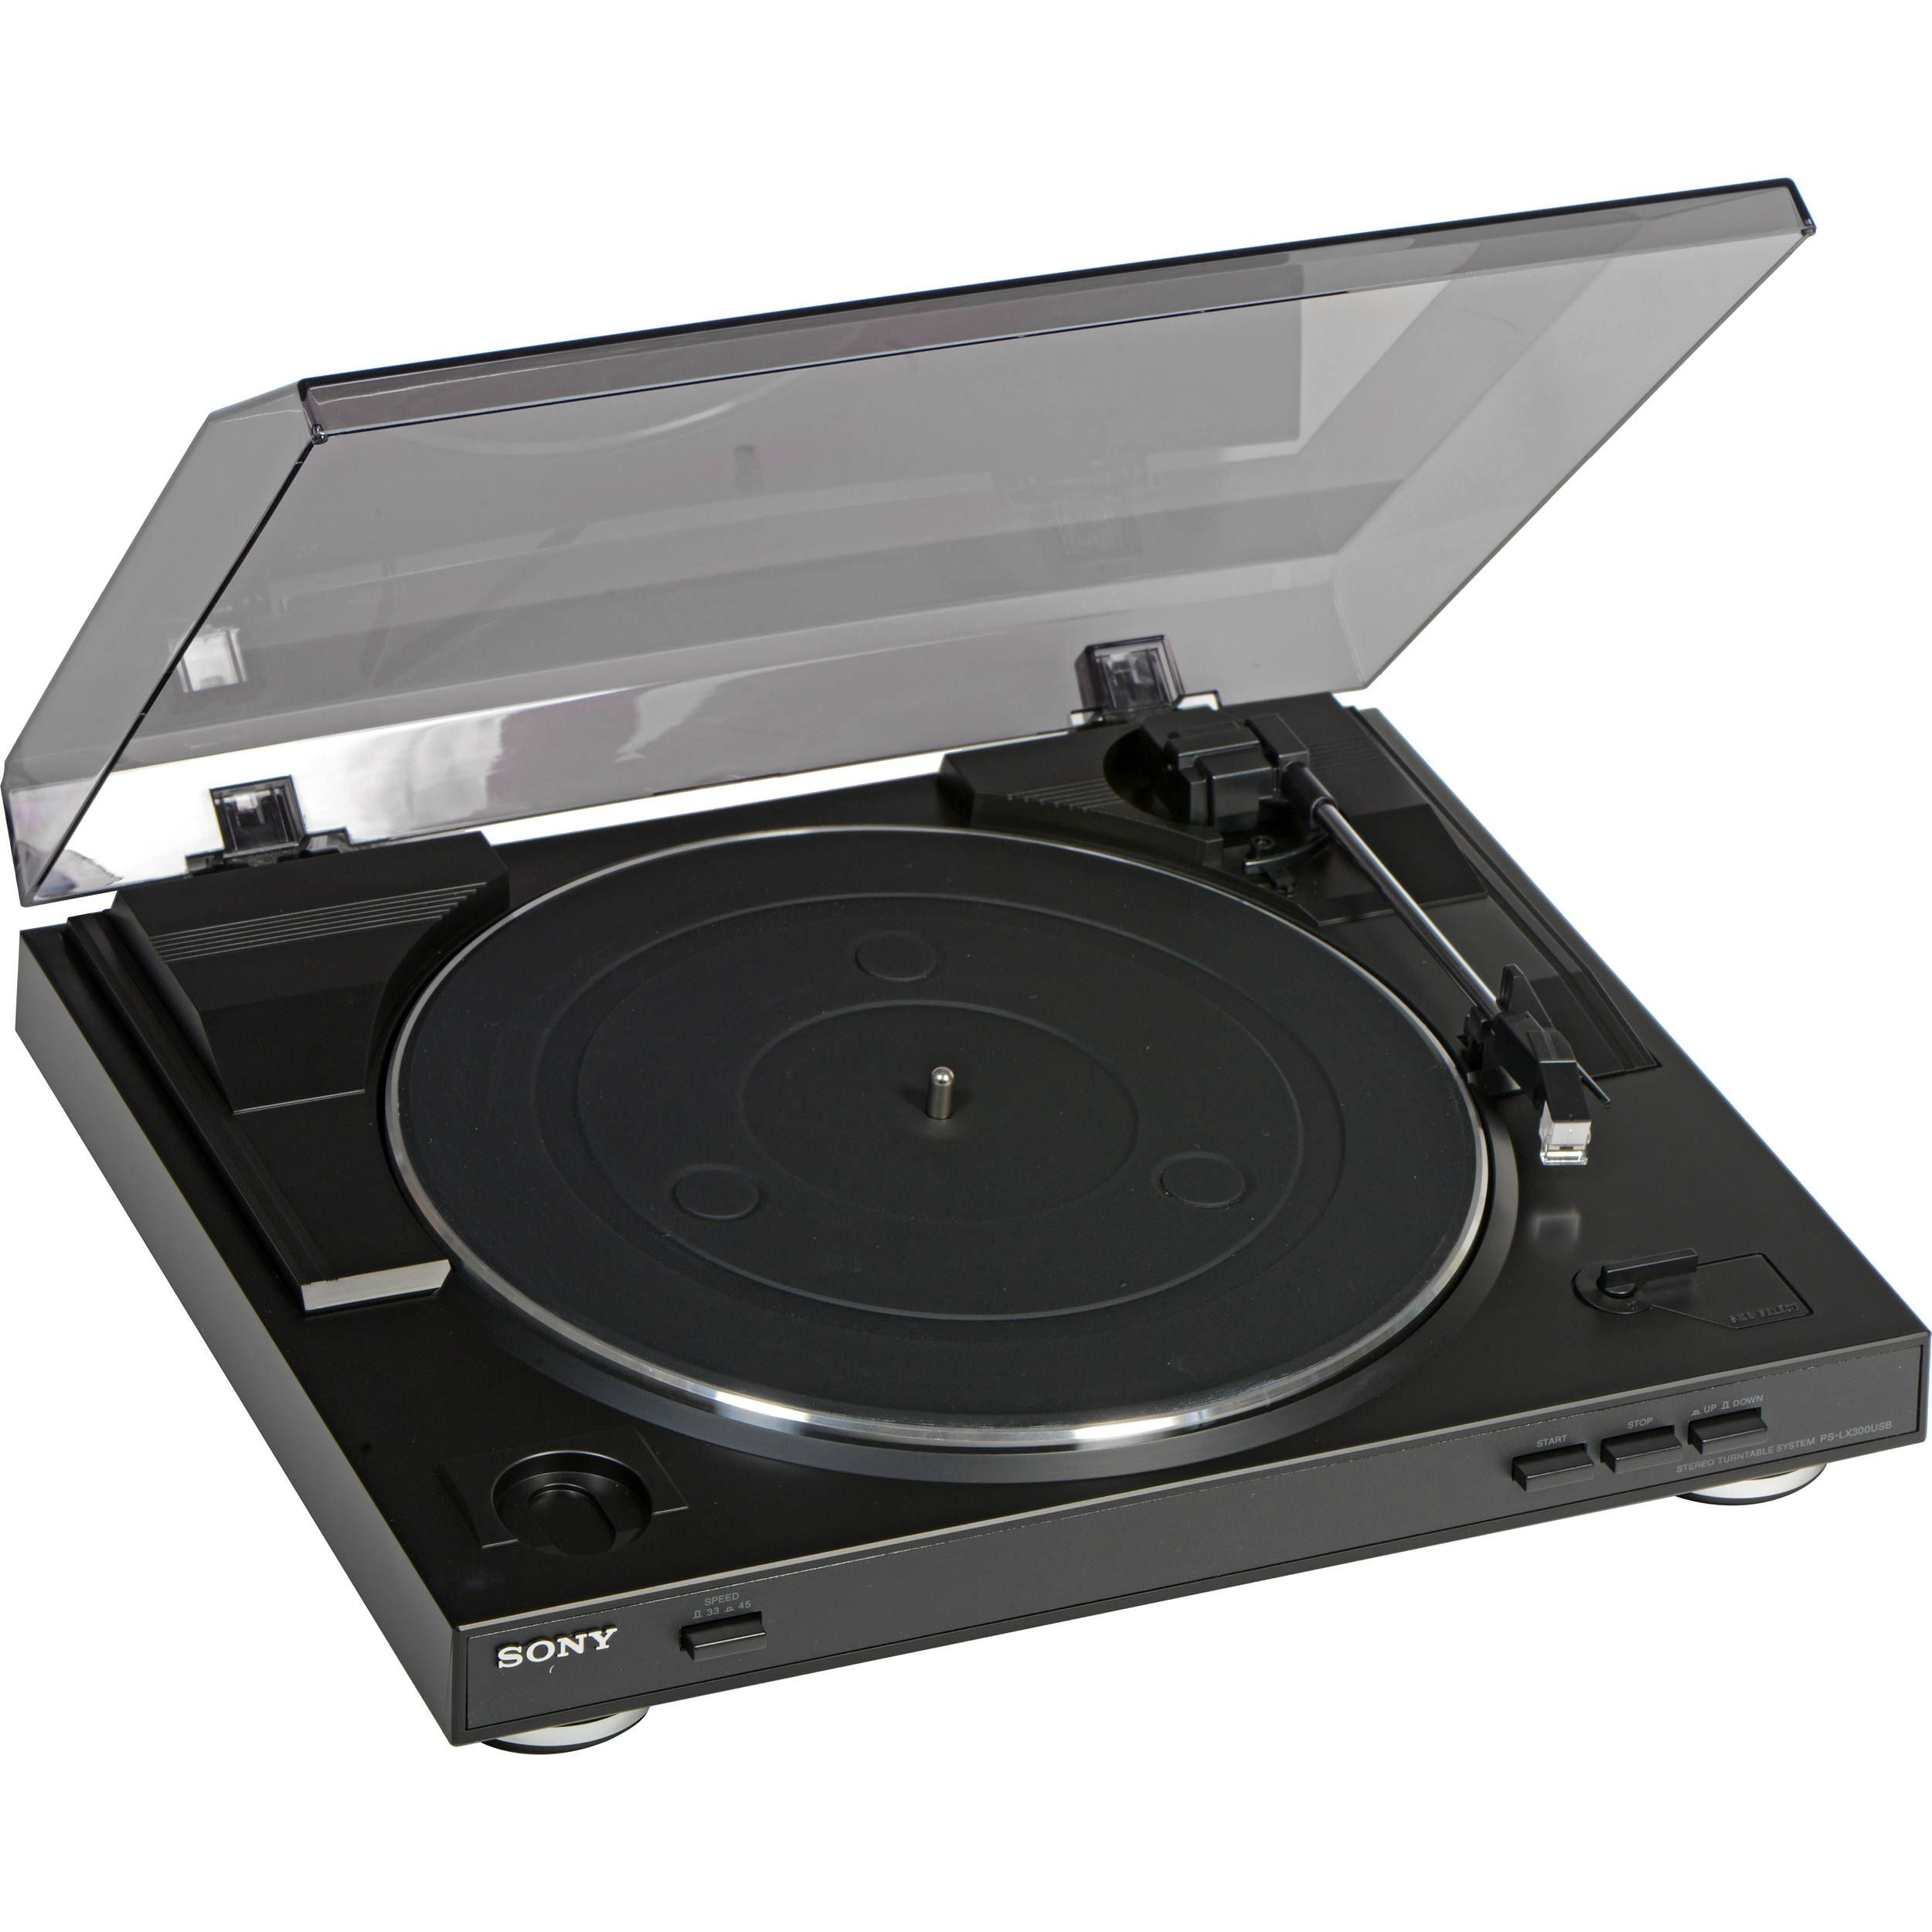 Turntables with Denon Brand